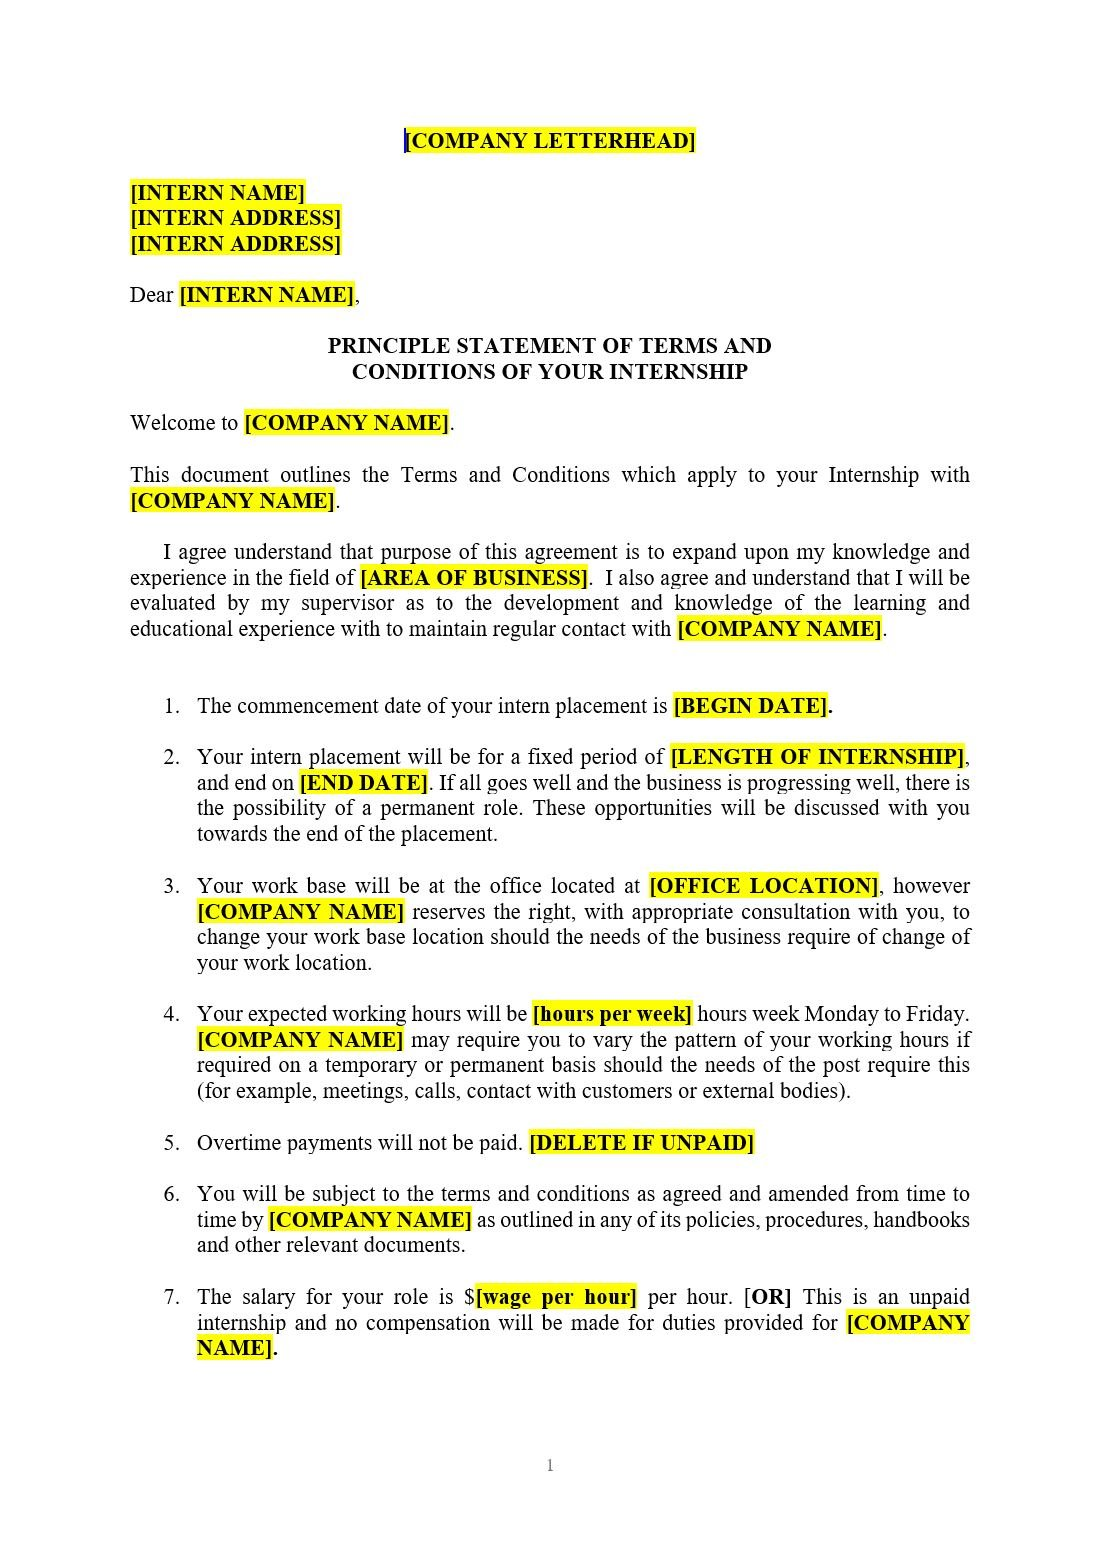 internship agreement template